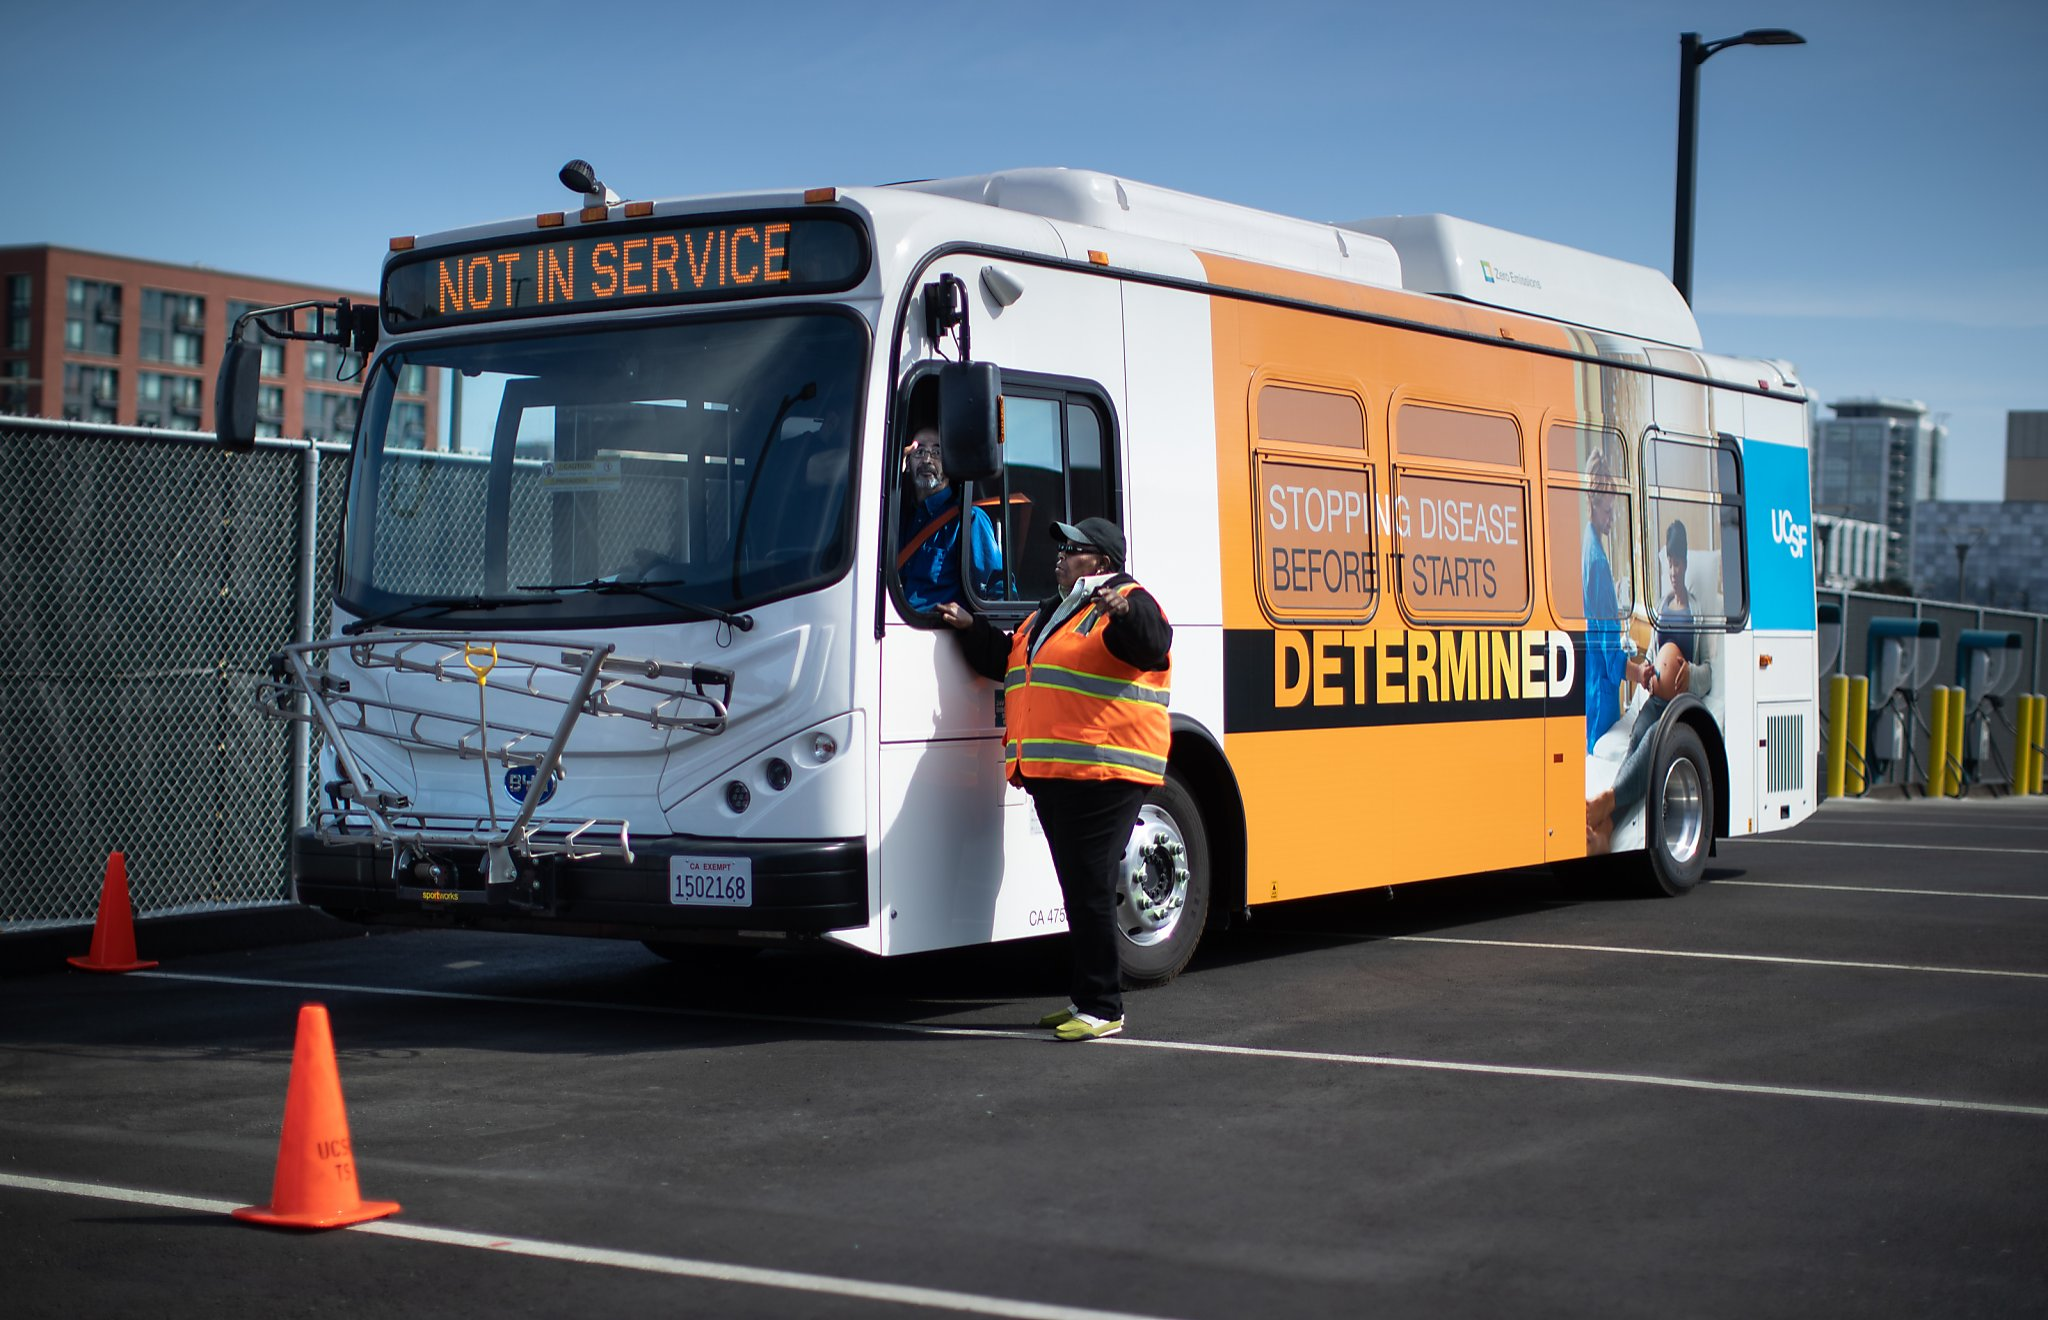 UCSF rolls out new fleet of electric buses to reach carbon